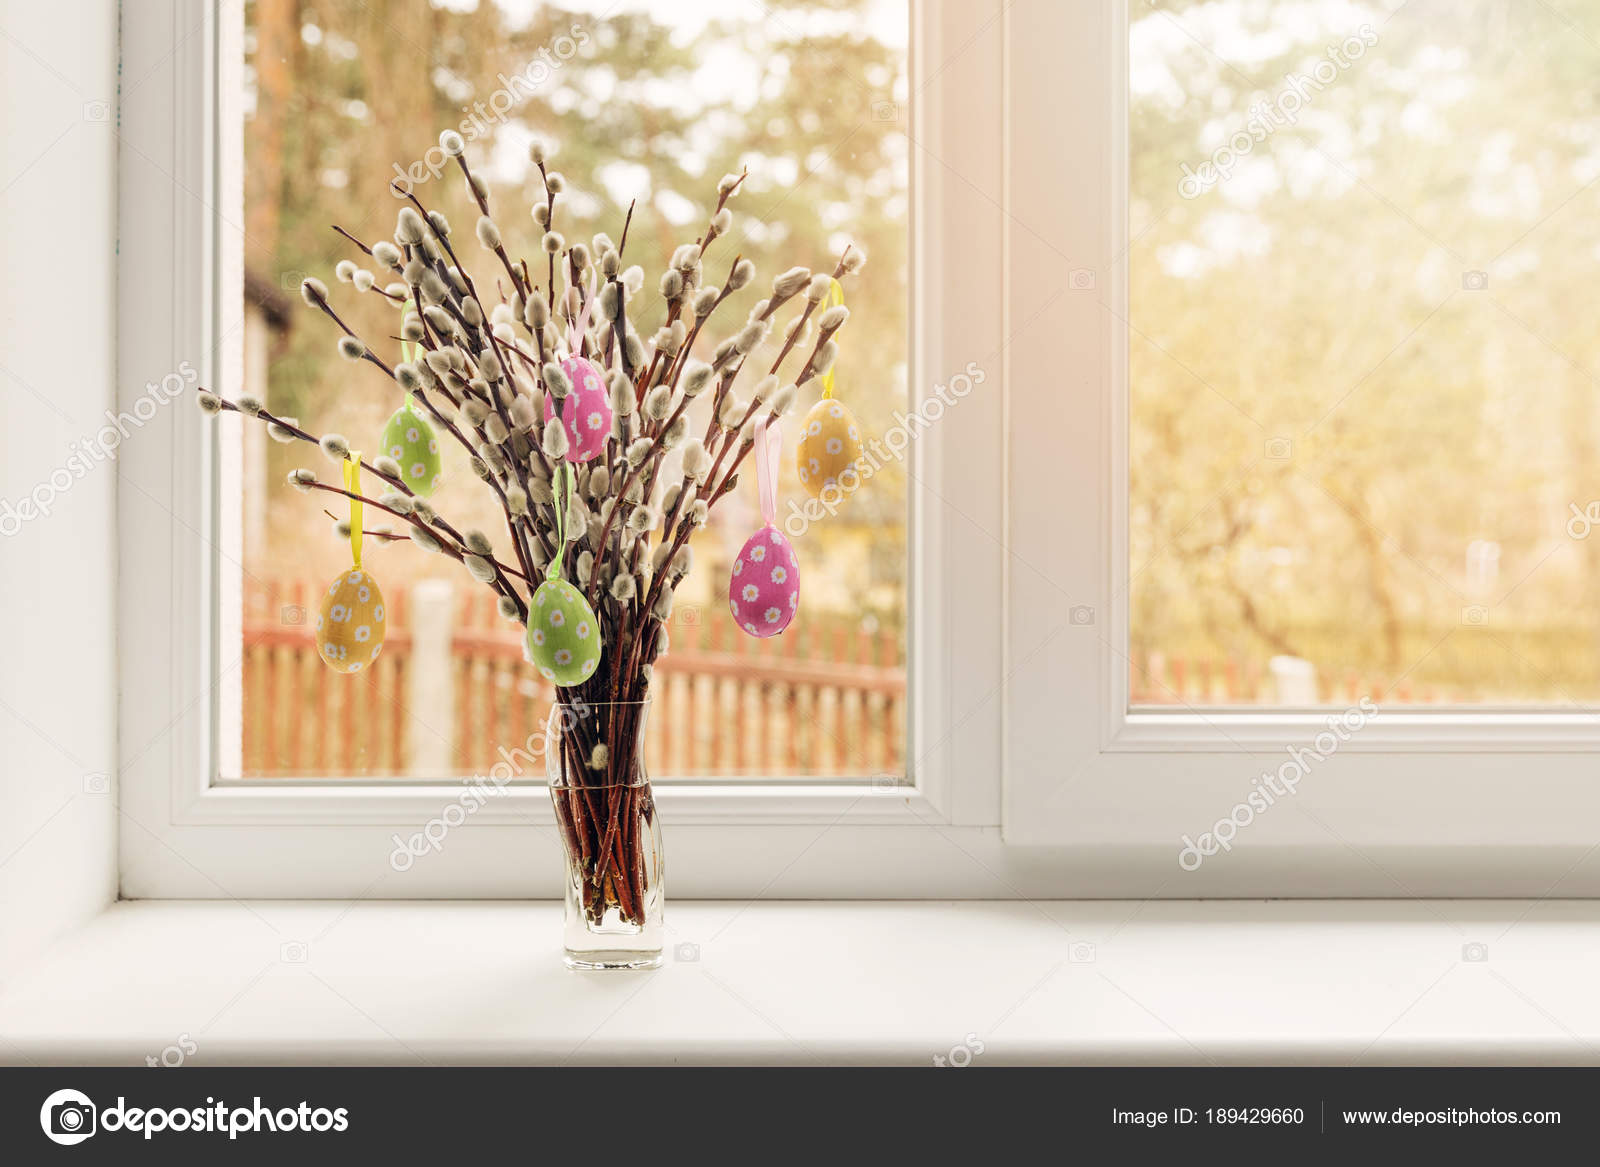 Easter Decoration Vase With Colorful Eggs Hanging In Pussy Willow